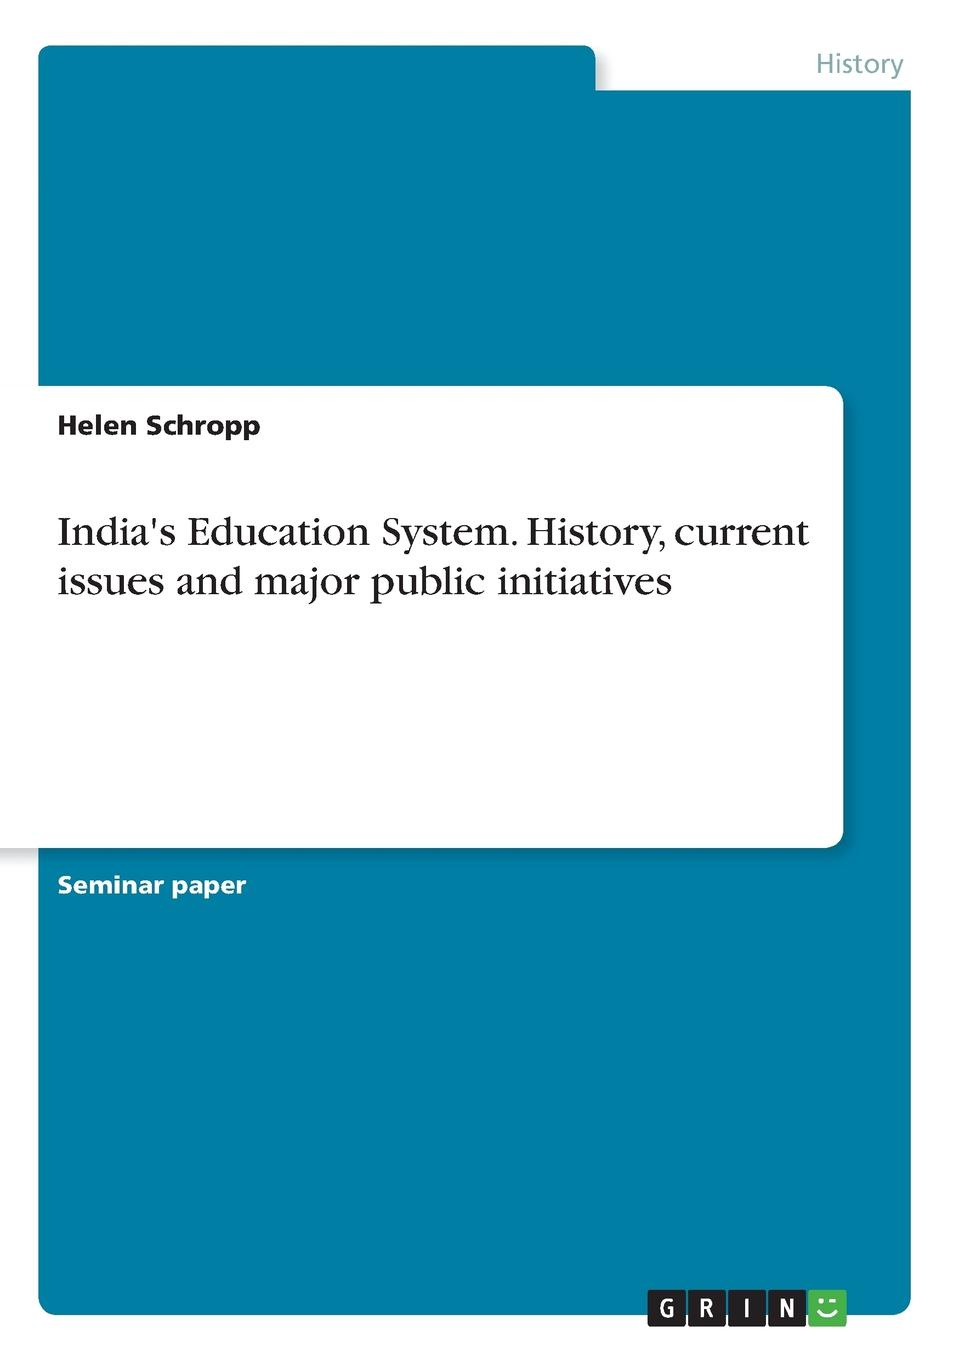 Helen Schropp India.s Education System. History, current issues and major public initiatives katarzyna szydlowska what are the major problems facing vaxess technologies